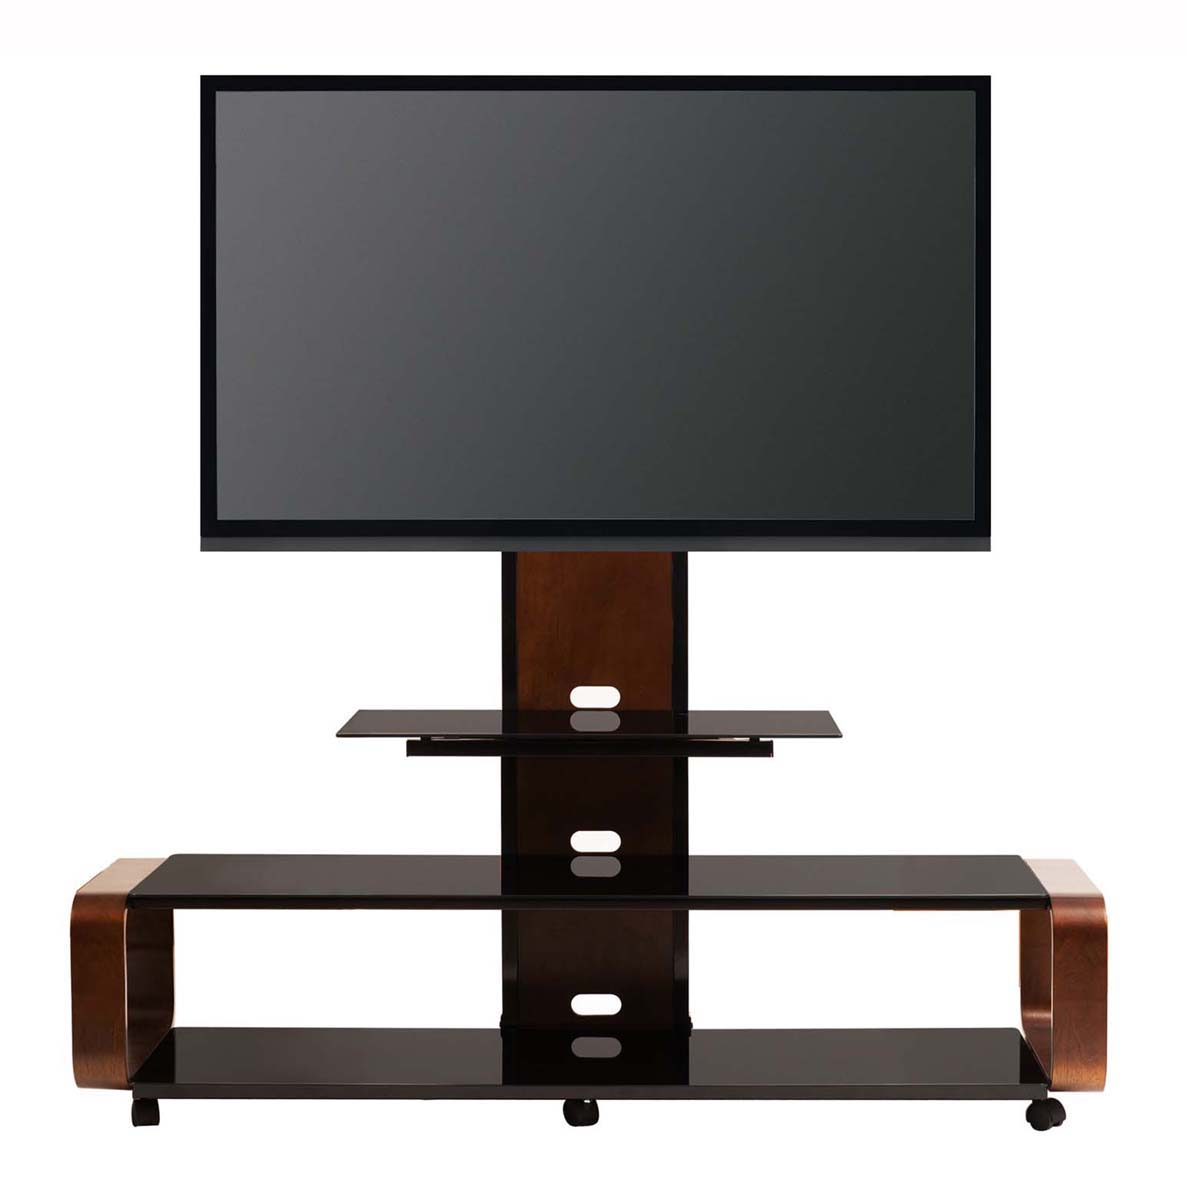 multi function tv stand w mount wheel for 35 45 50 60 65 70 80 inch lcd tv new ebay. Black Bedroom Furniture Sets. Home Design Ideas